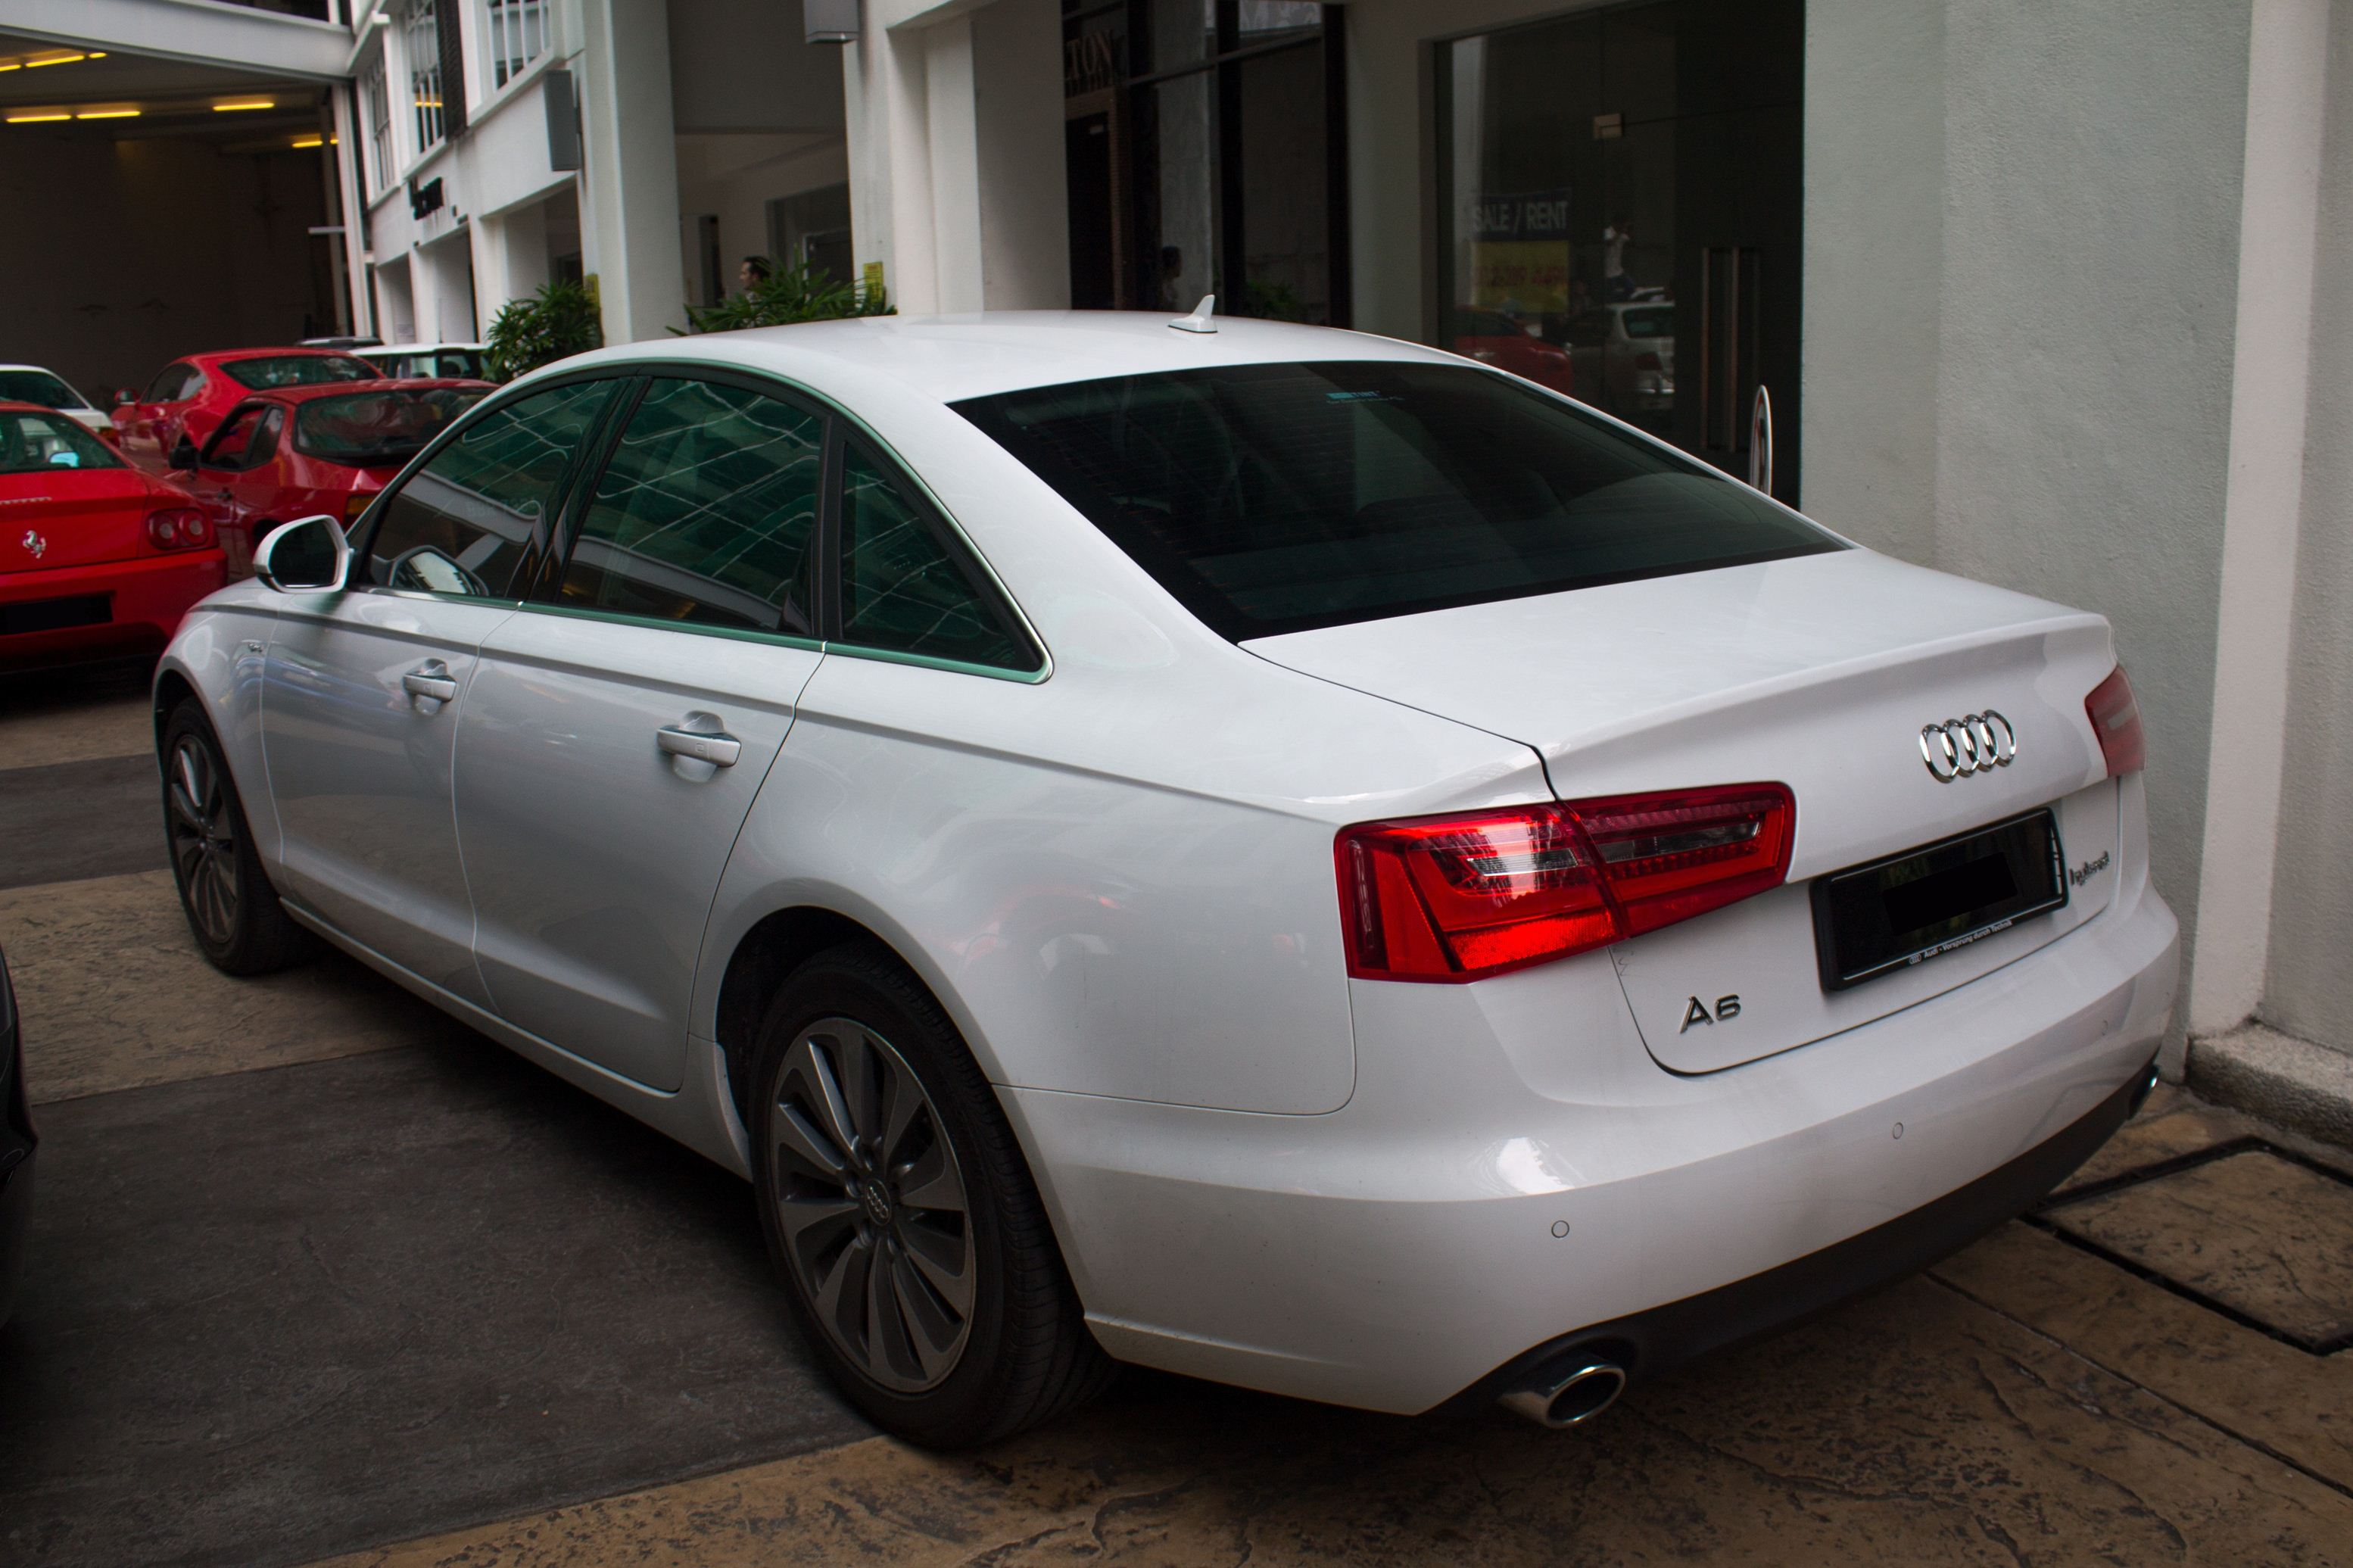 Audi A Hybrid Rental Malaysia Go Further When Renting Car - Audi rental cars